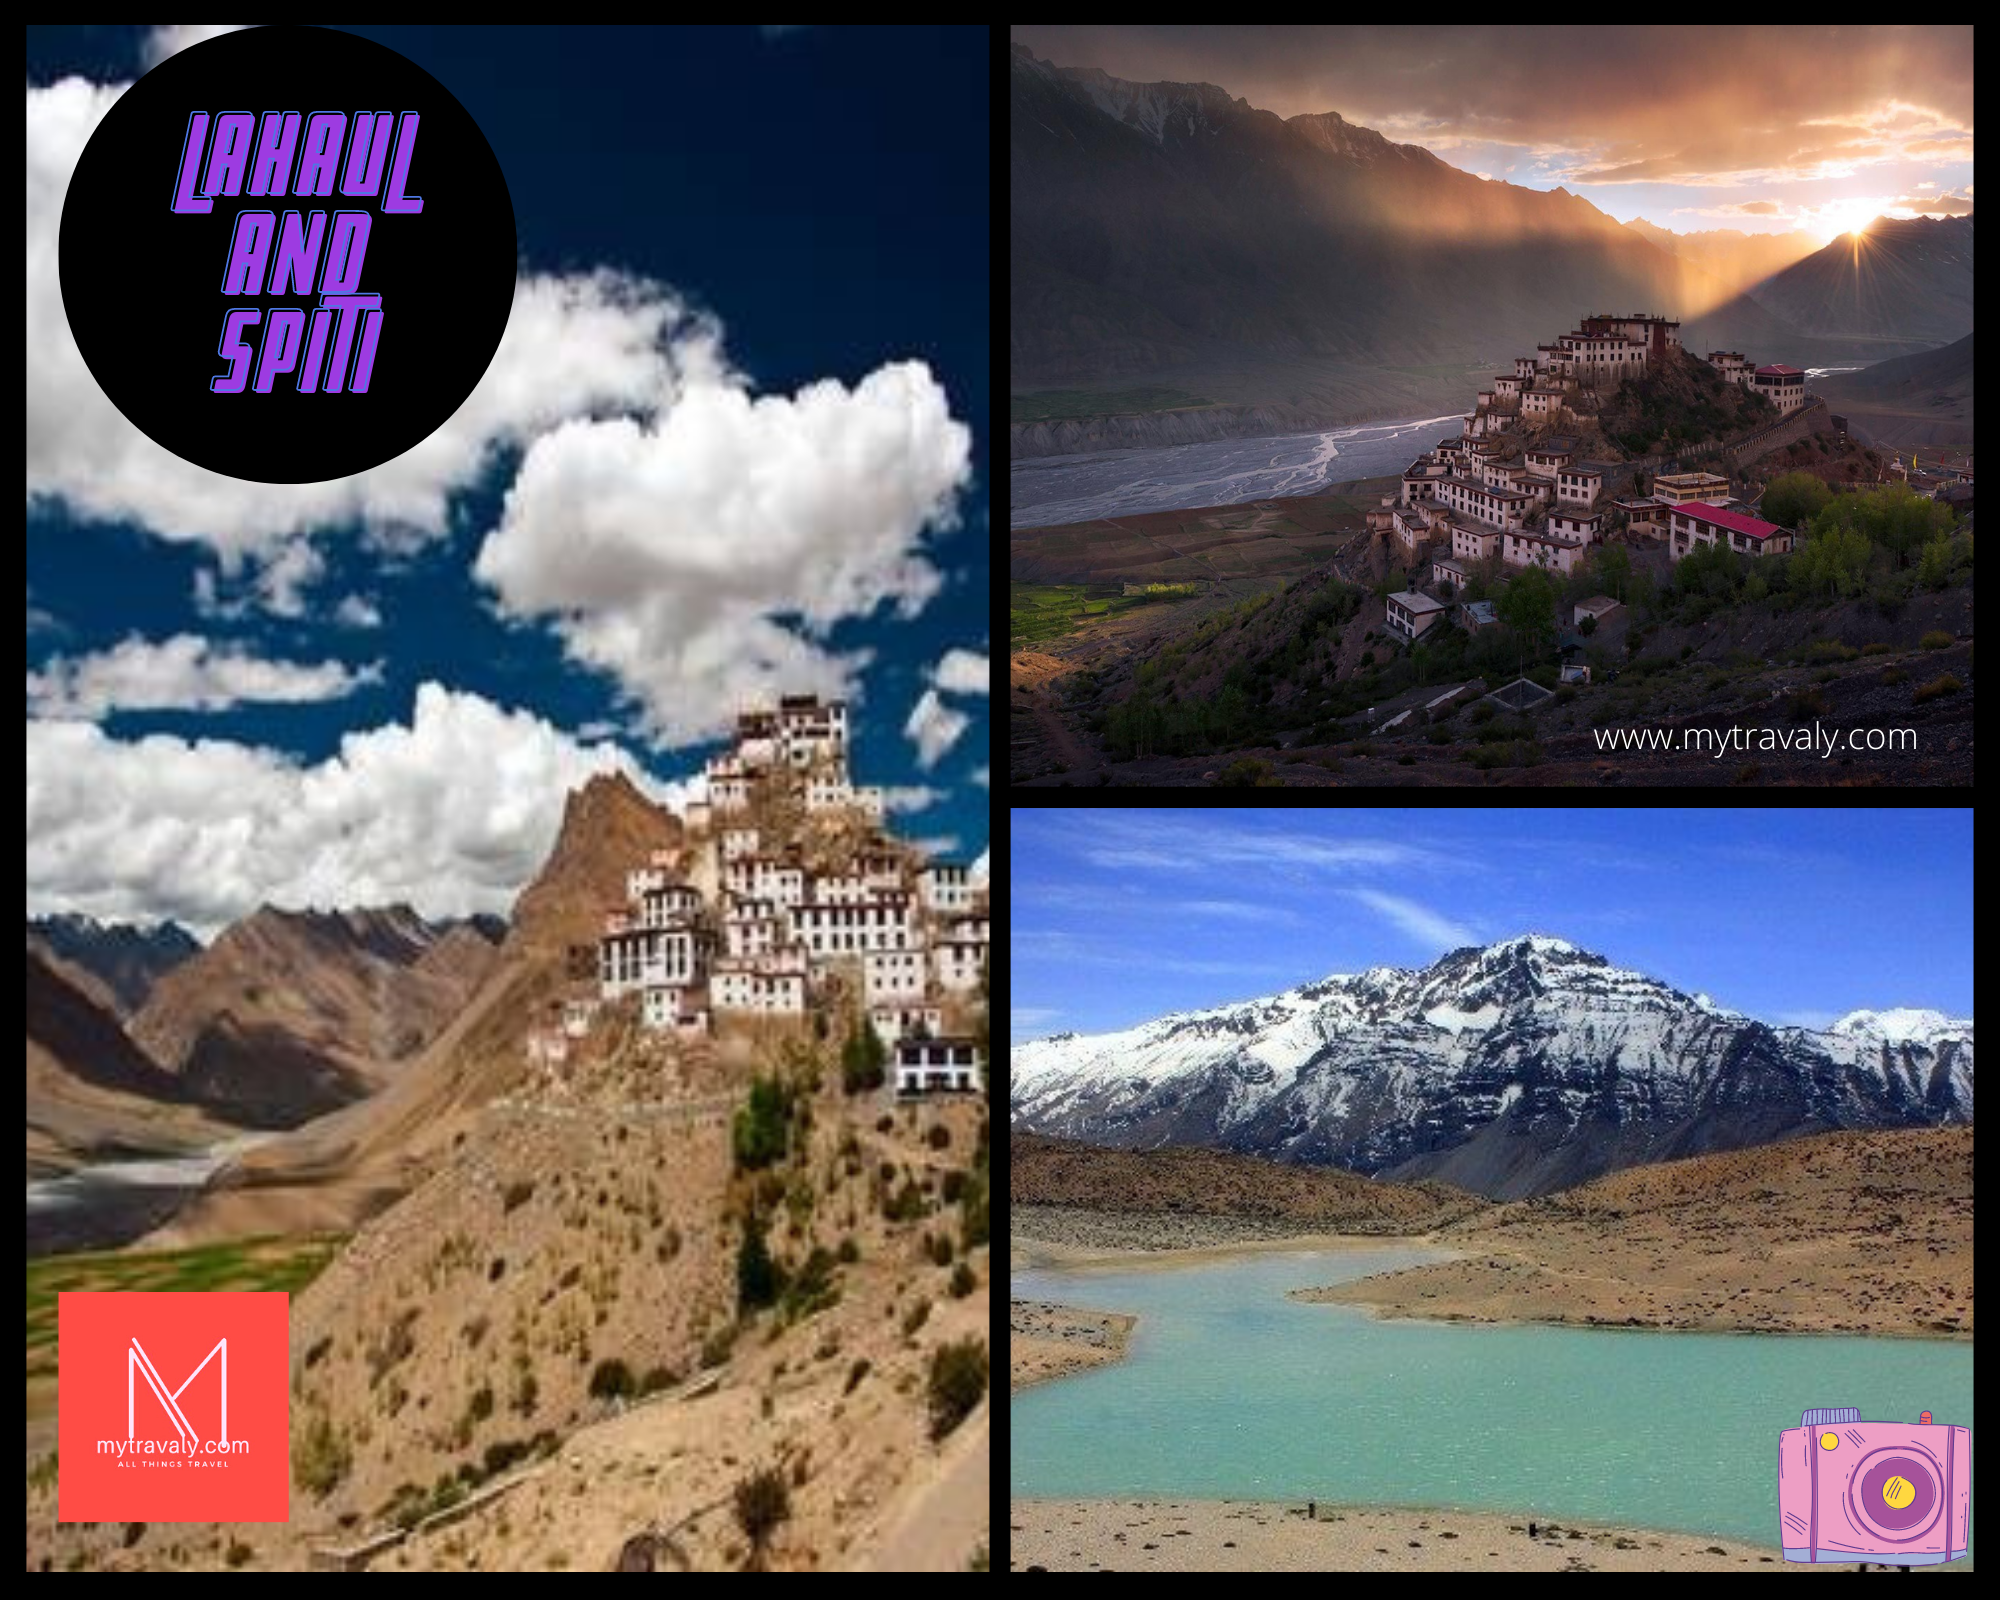 An unexplored destination in the North: Lahaul and Spiti